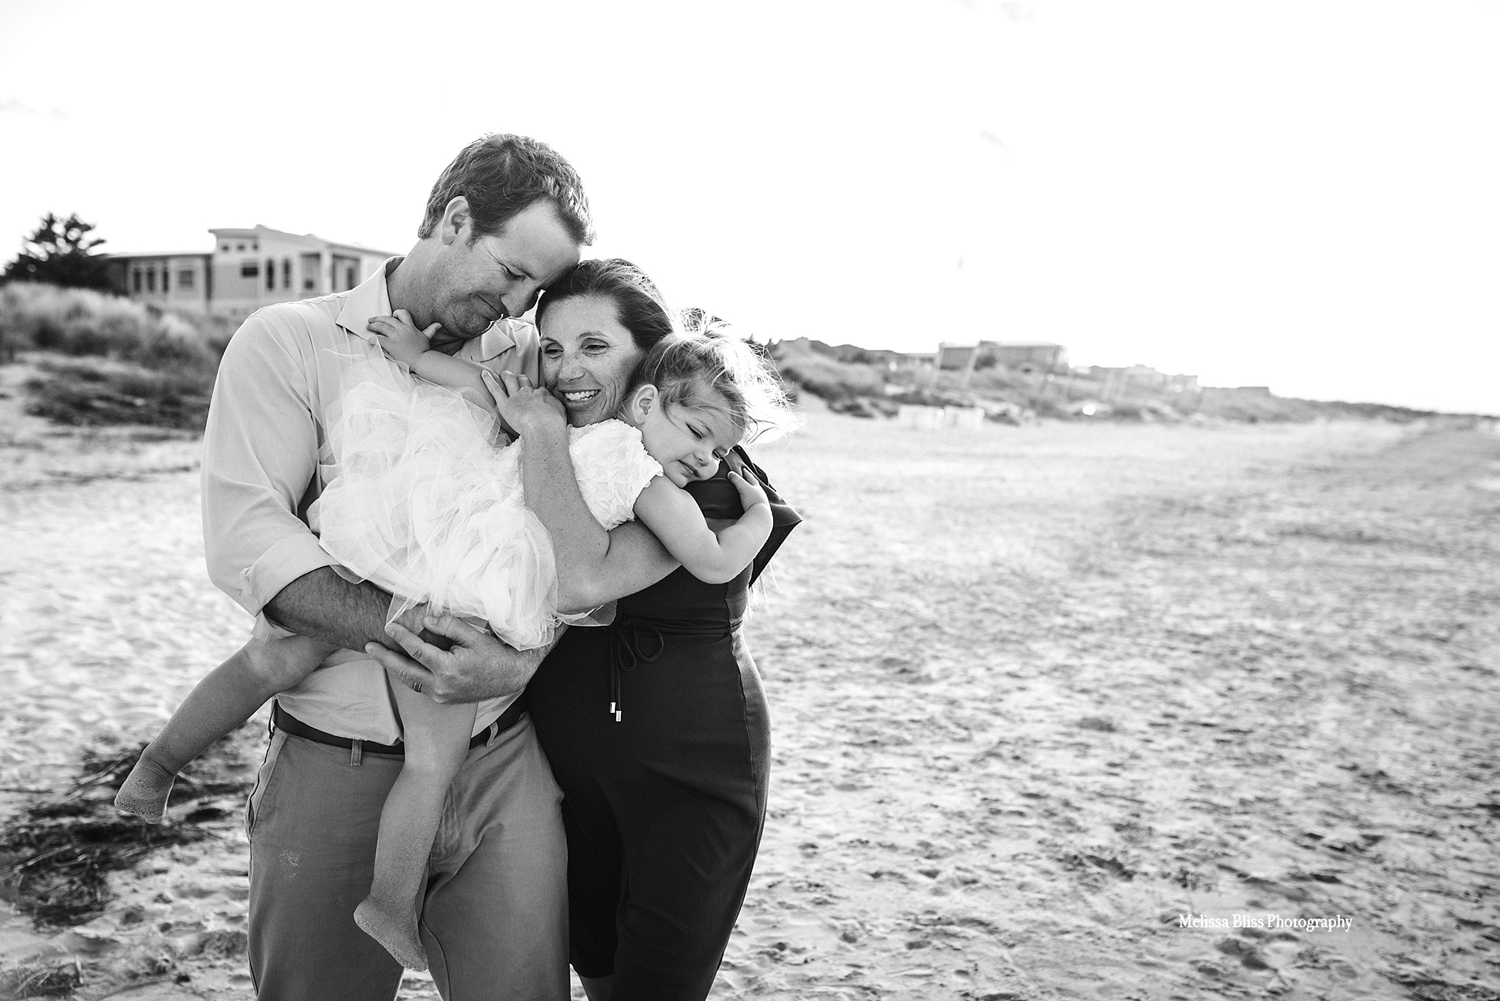 norfolk-virginia-beach-maternity-photographer-family-maternity-pictures-on-the-beach-melissa-bliss-photography.jpg